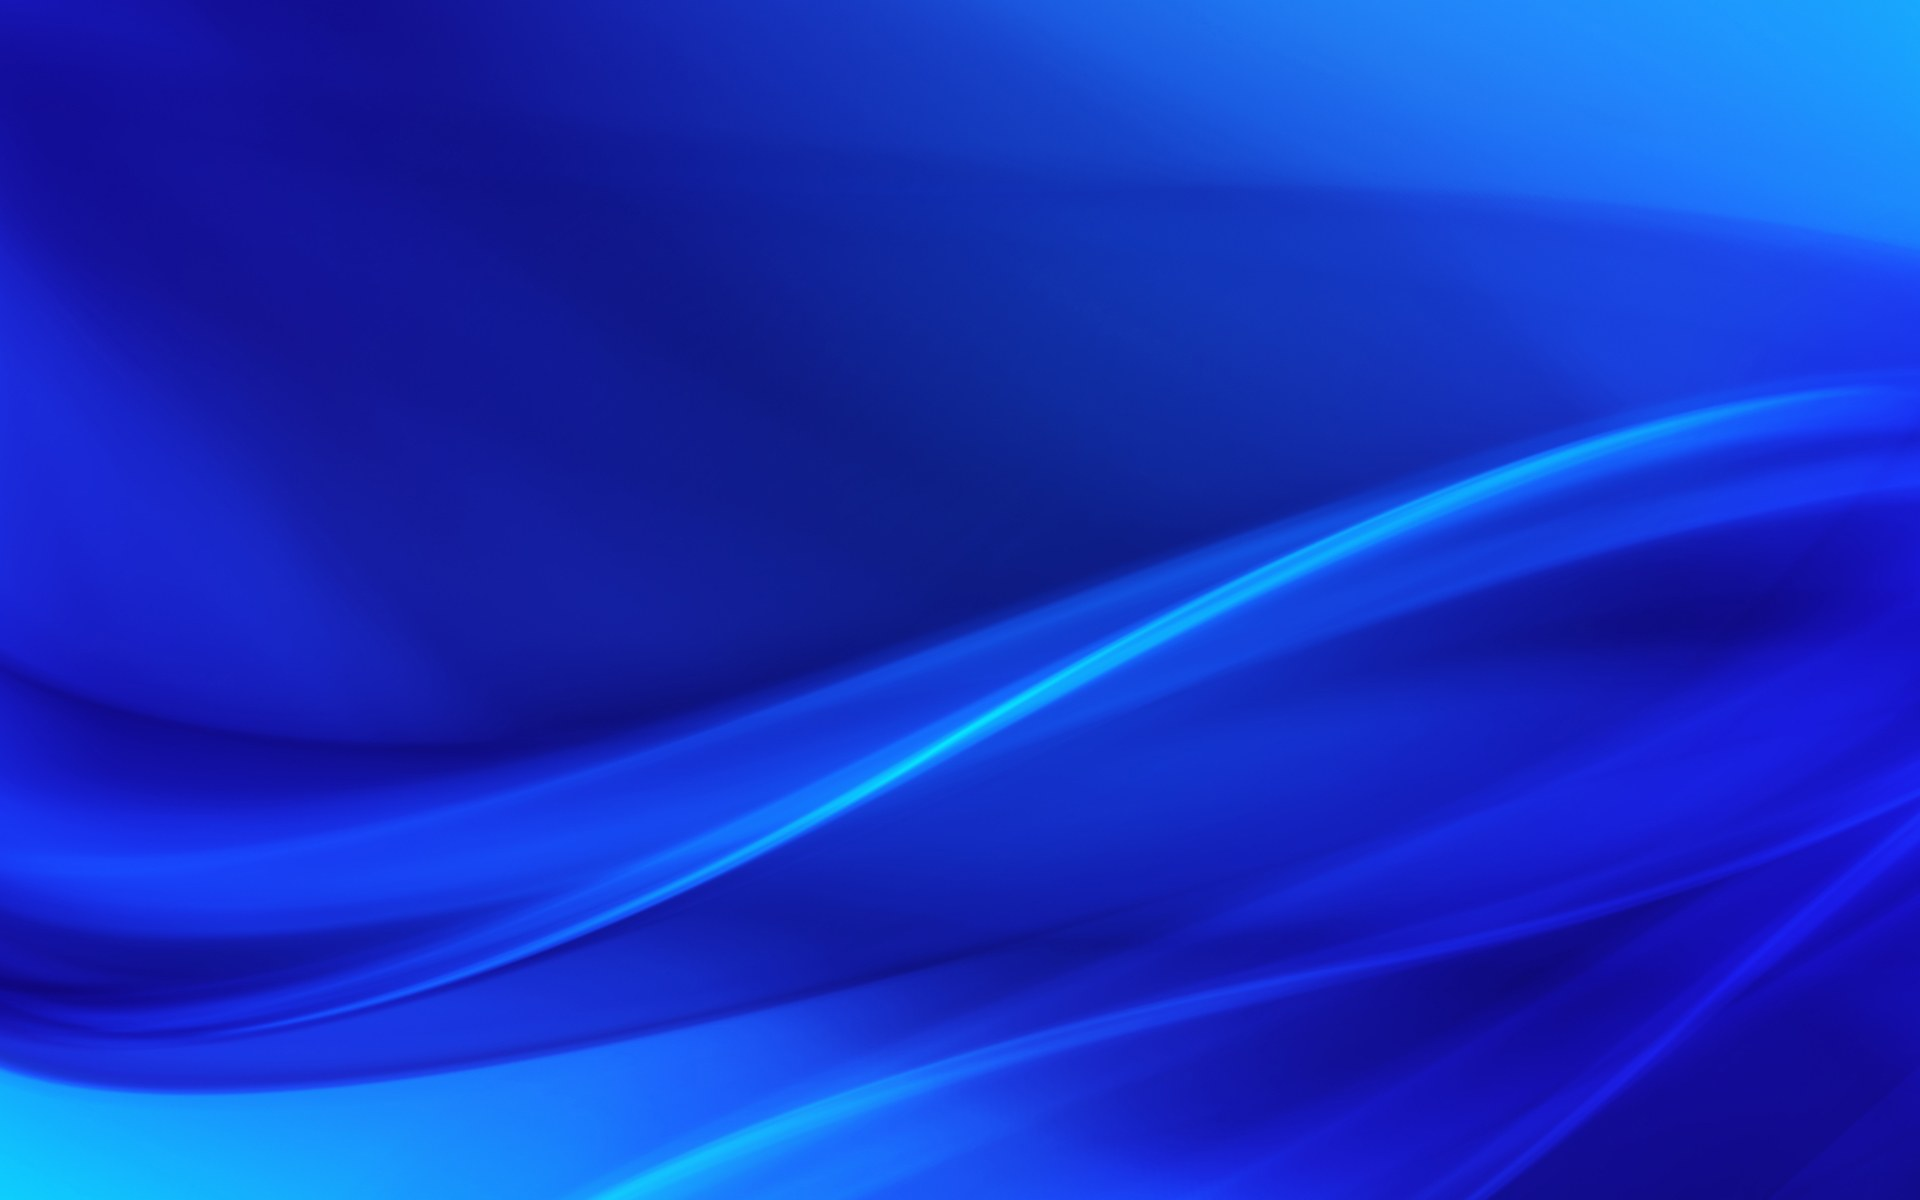 Blue Background   Blue Abstract Light Effect 19201200 NO28 Wallpaper 1920x1200